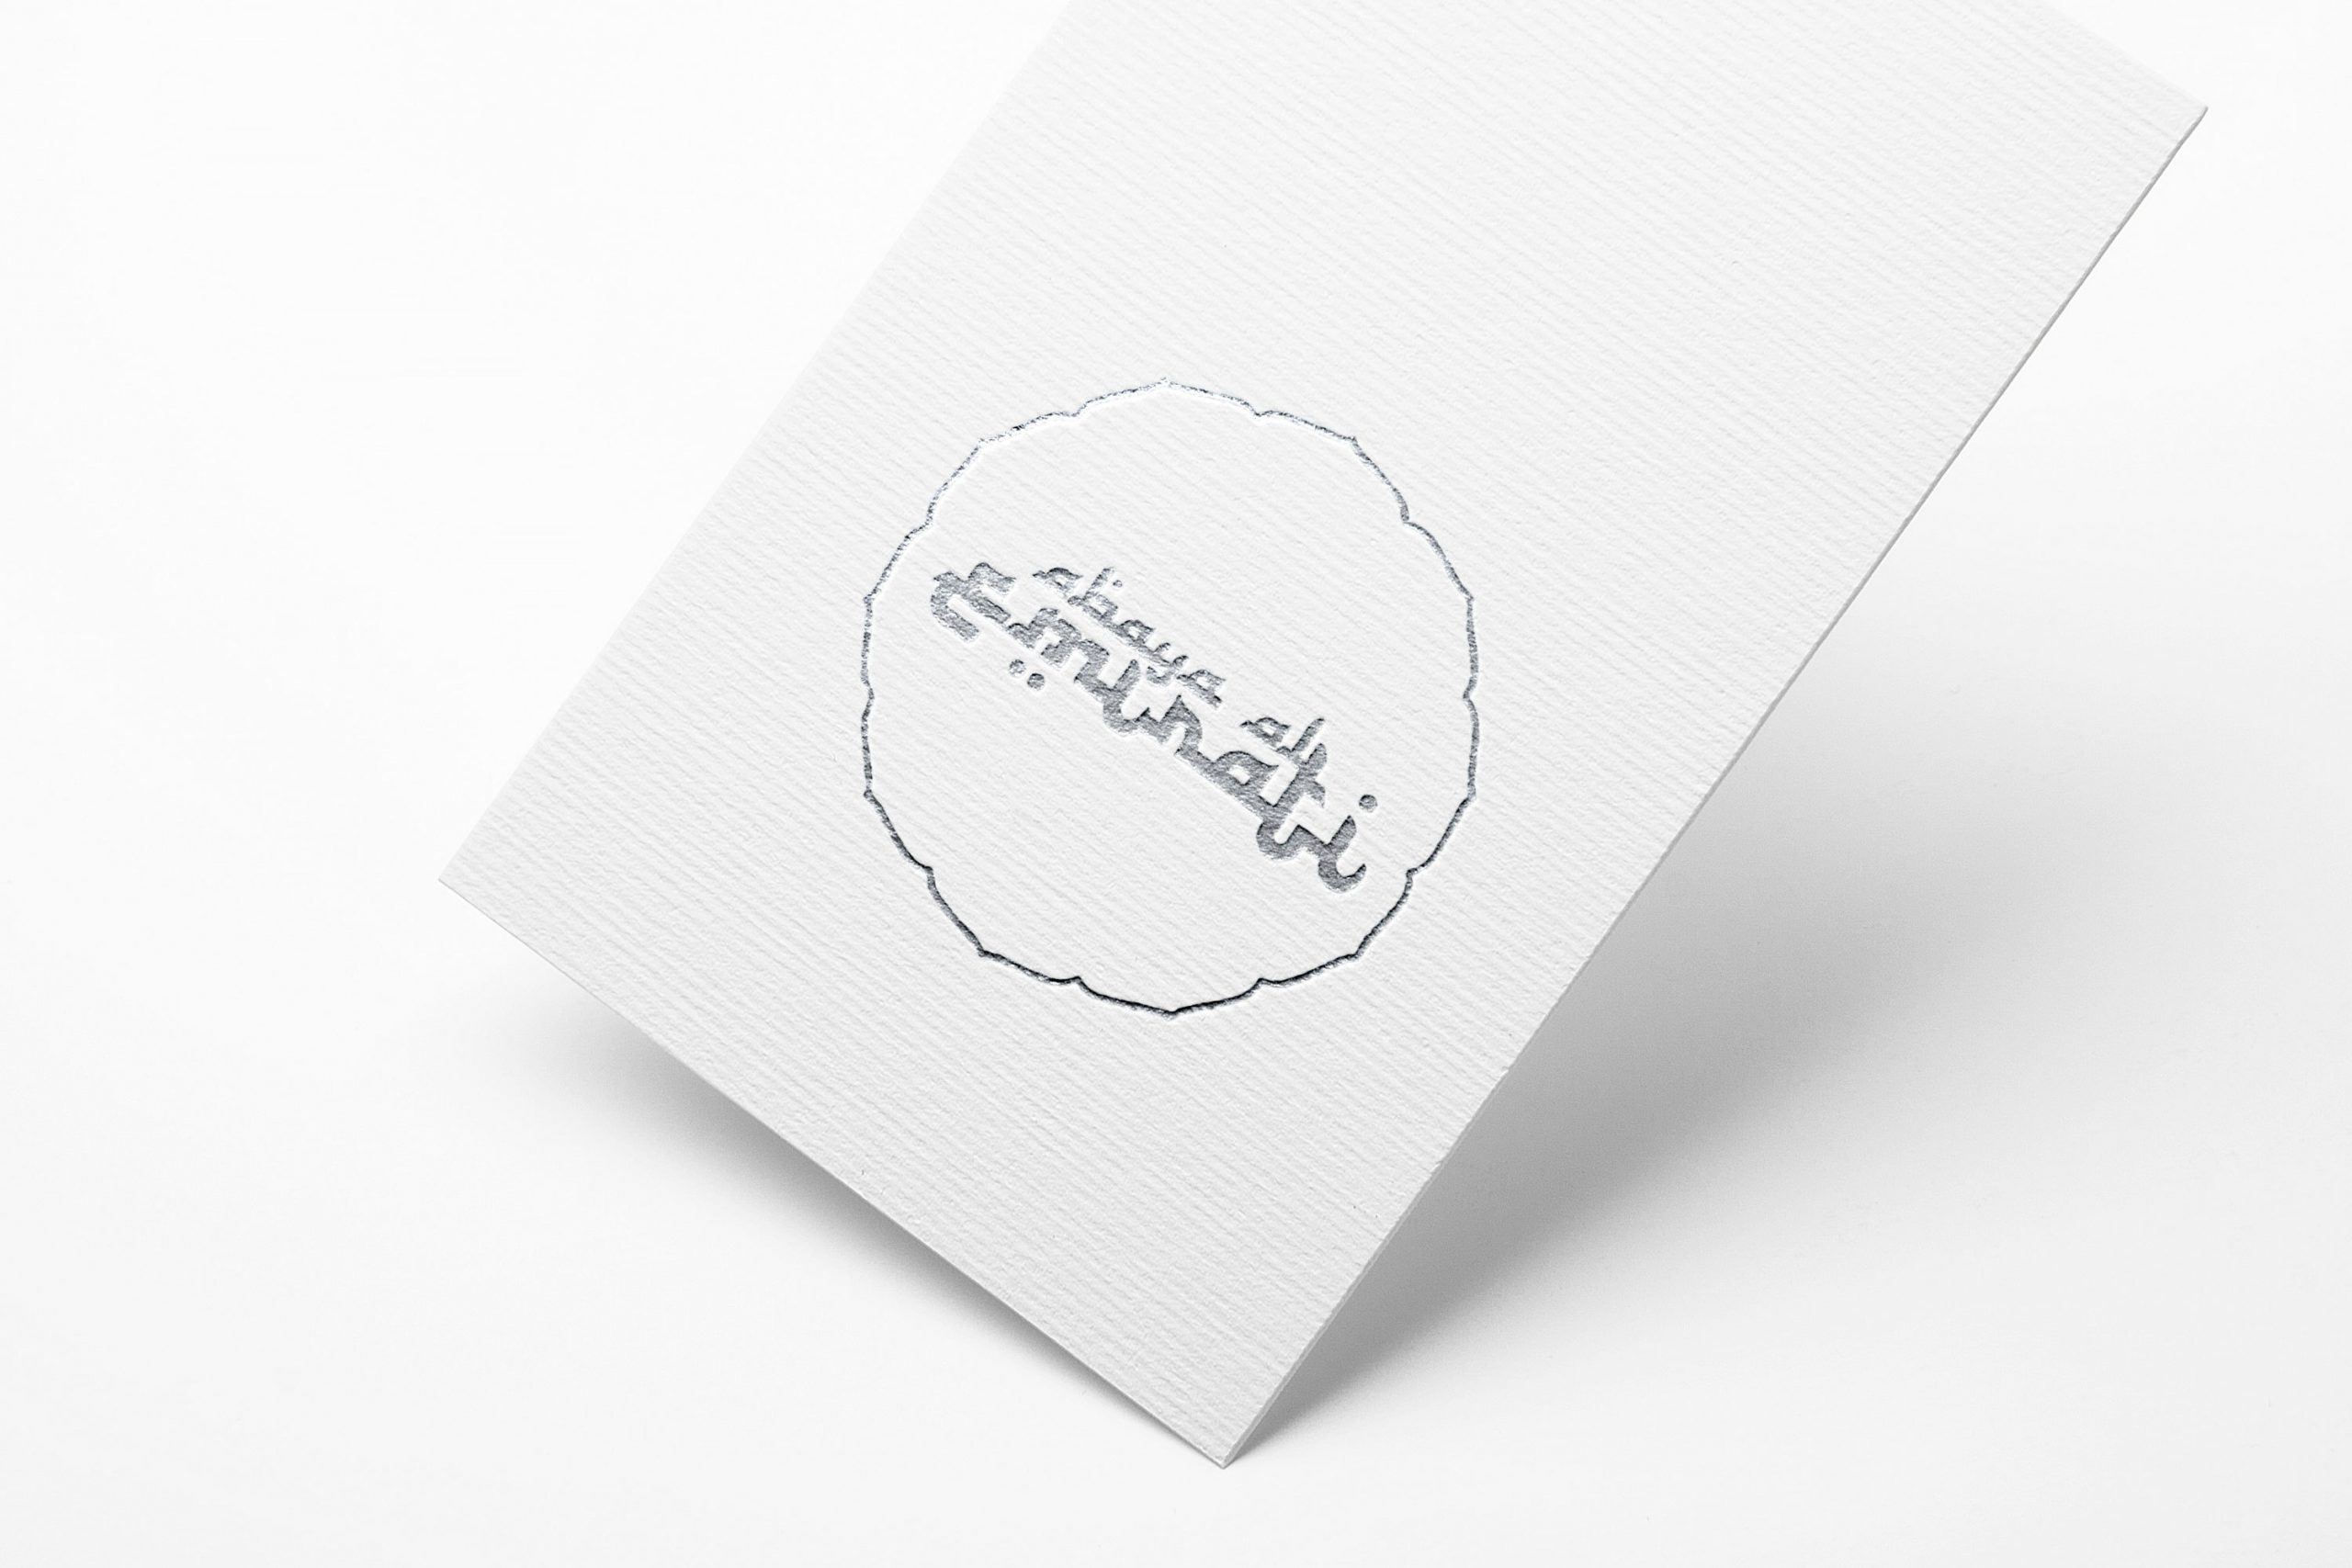 Branding for textile product